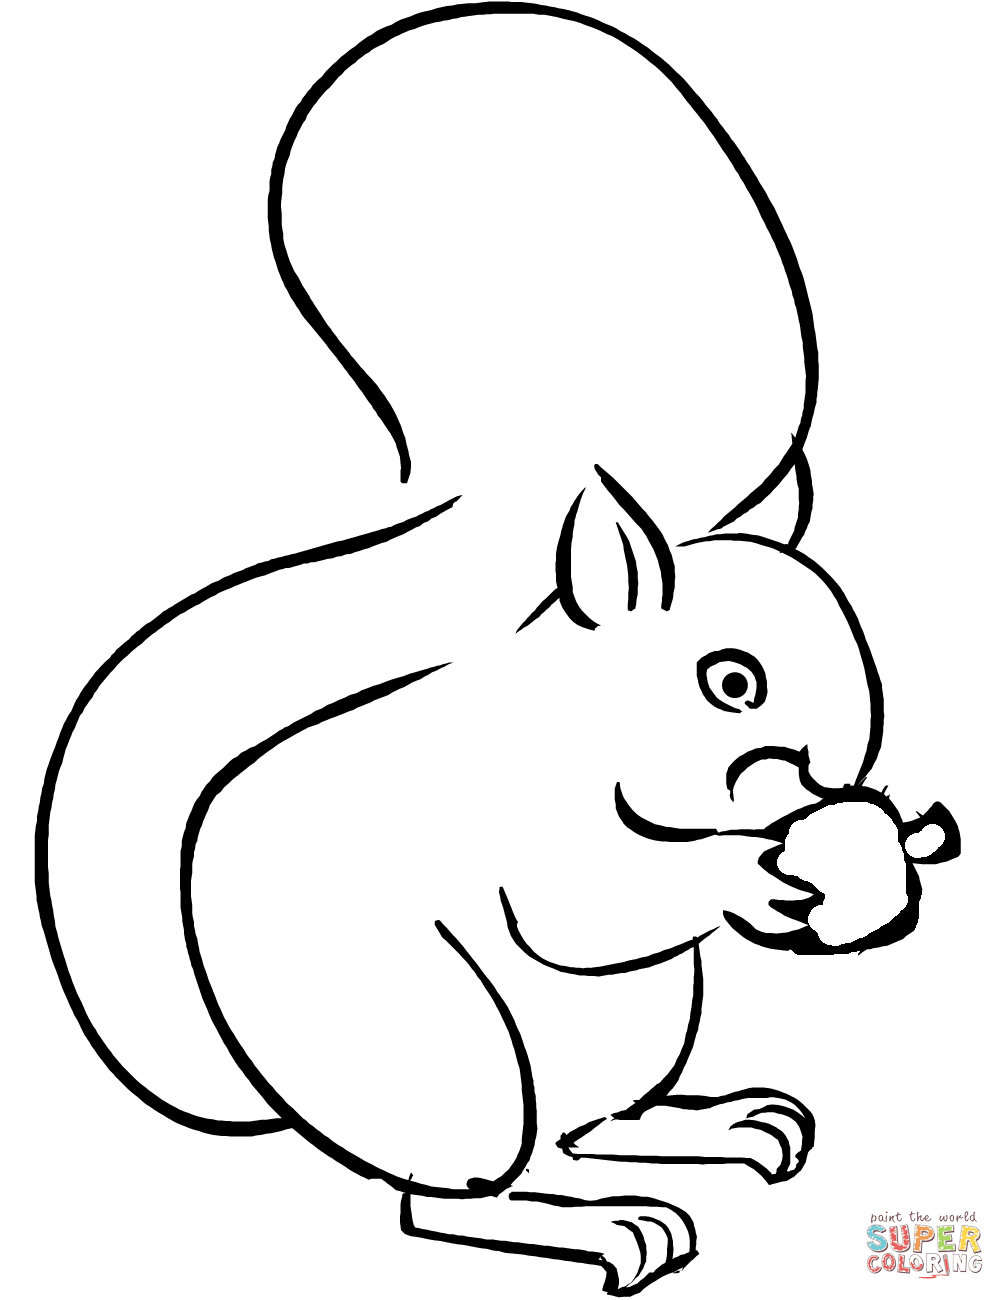 1005x1300 Cartoon Squirrel Holding An Acorn Coloring Page Free Printable